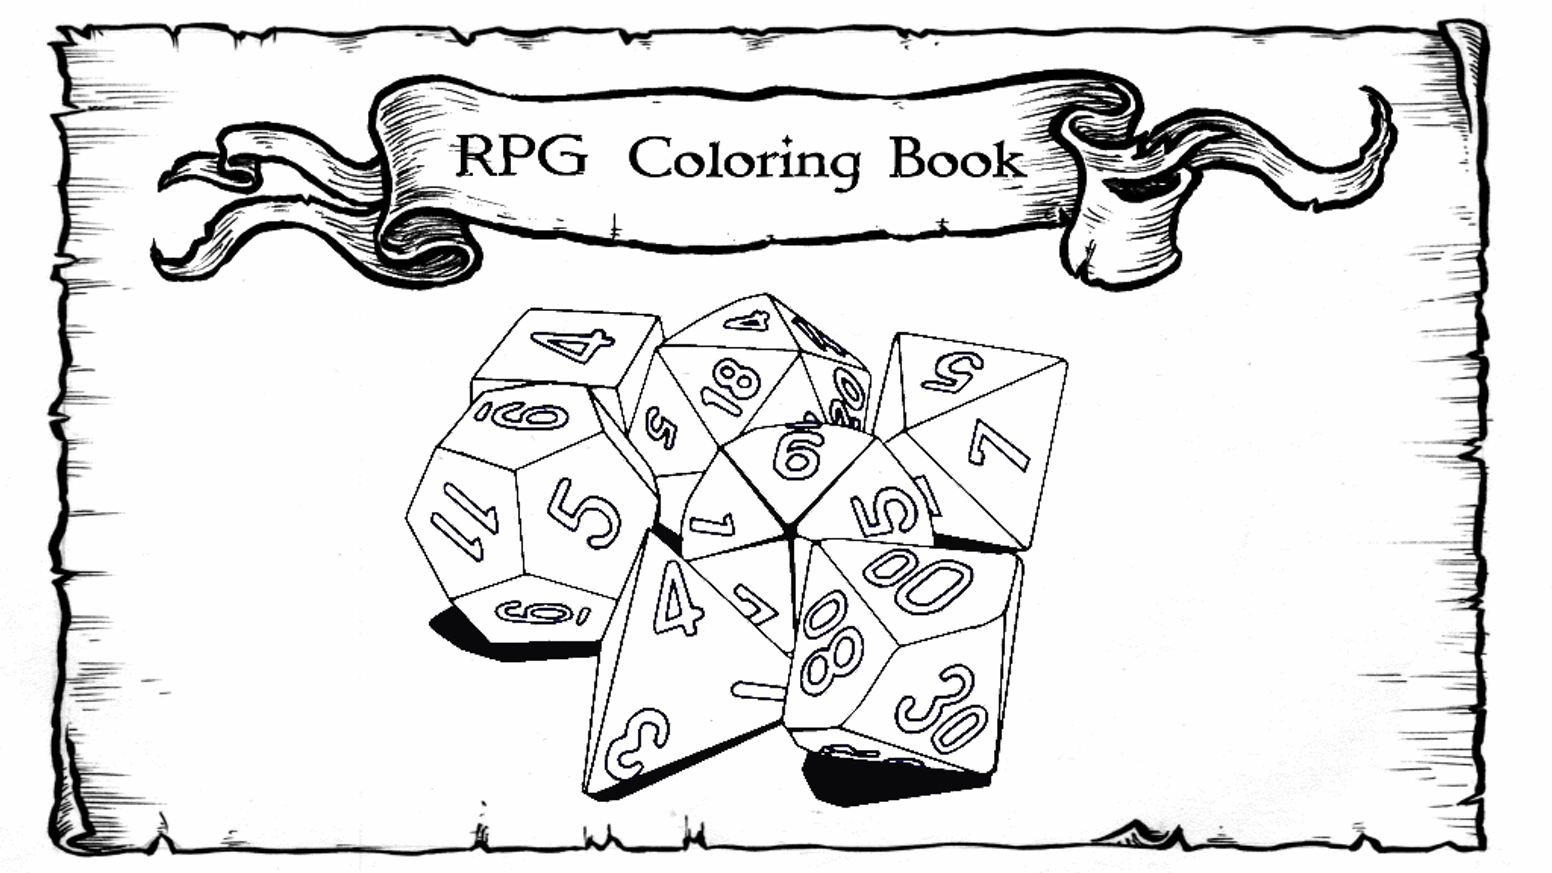 The RPG Coloring Book by Arcana Games — Kickstarter